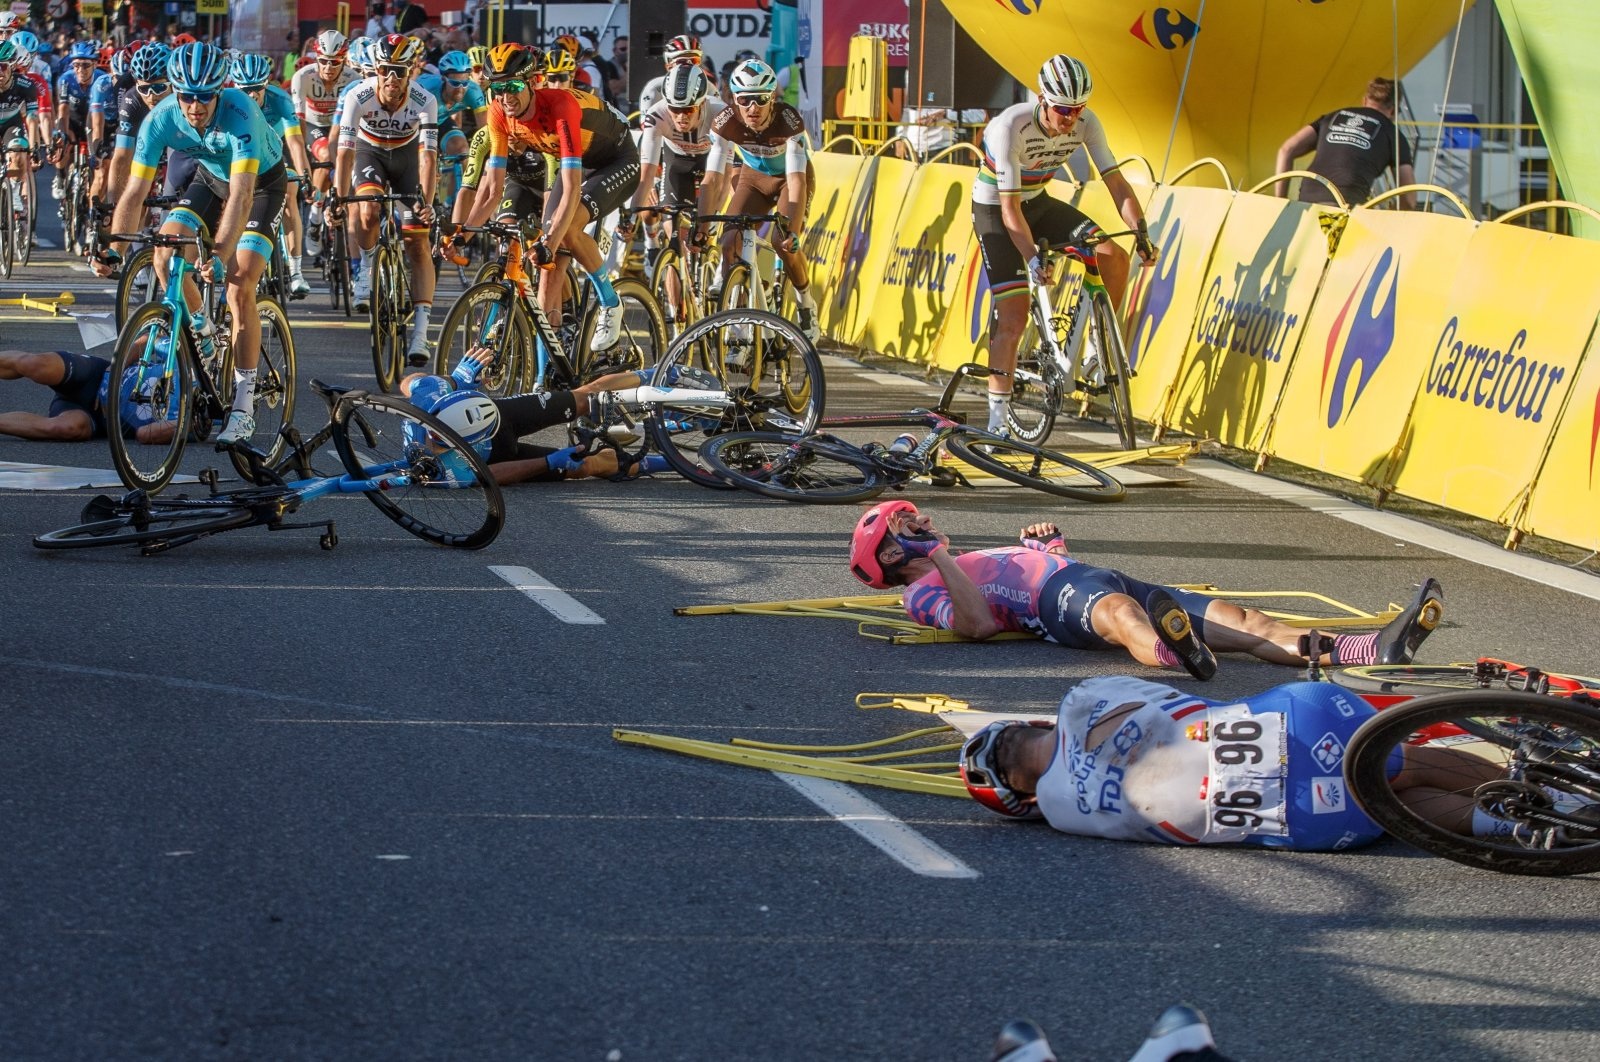 Cyclists lie on the street following a crash in the sprint during the Tour of Poland cycling race, between Chorzow and Katowice, Poland, Aug. 5, 2020. (EPA Photo)